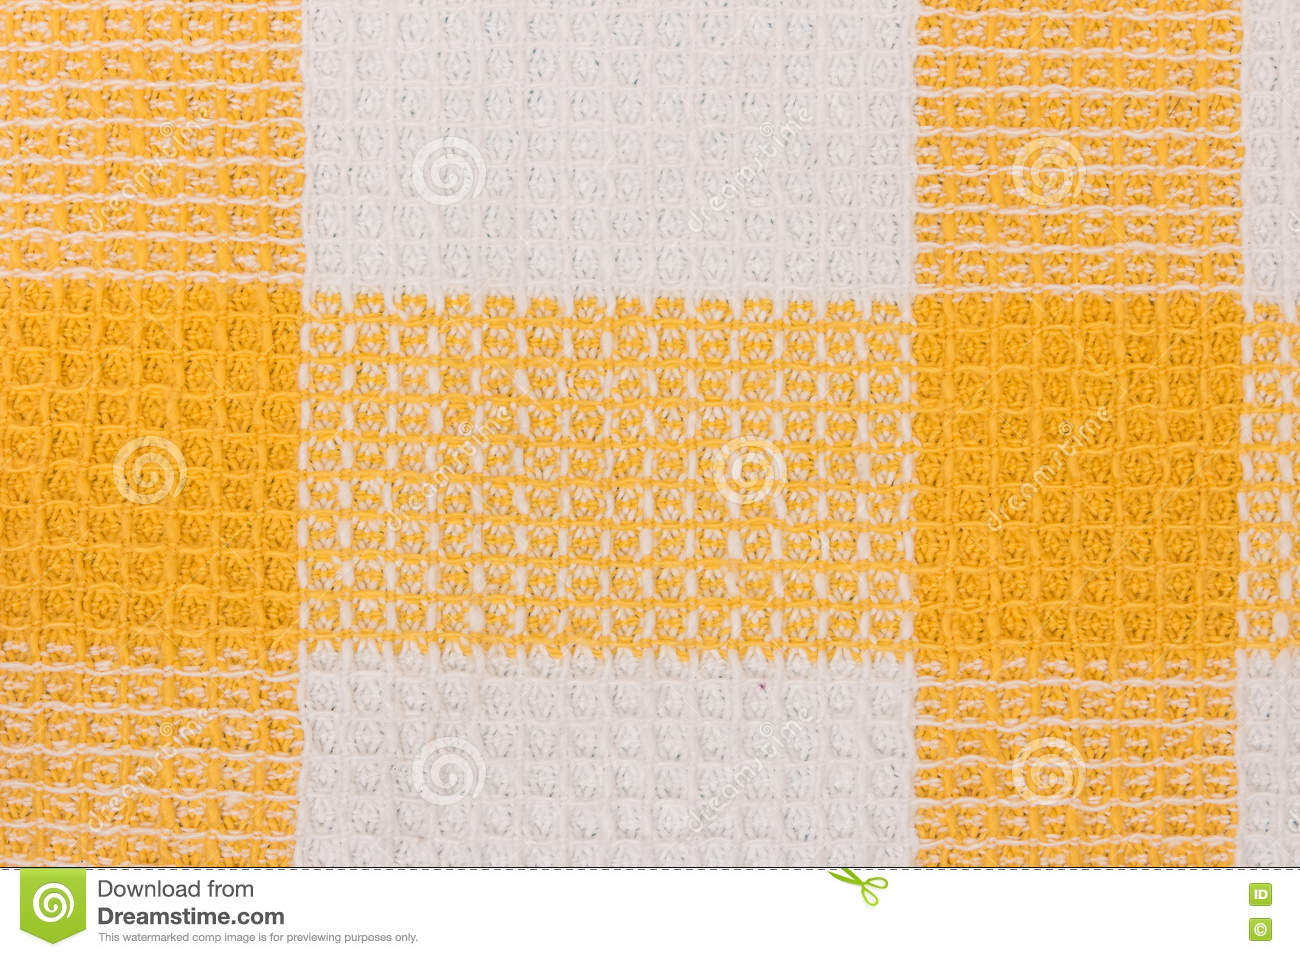 Yellow And White Chess Towel Fabric. Tablecloth Texture.